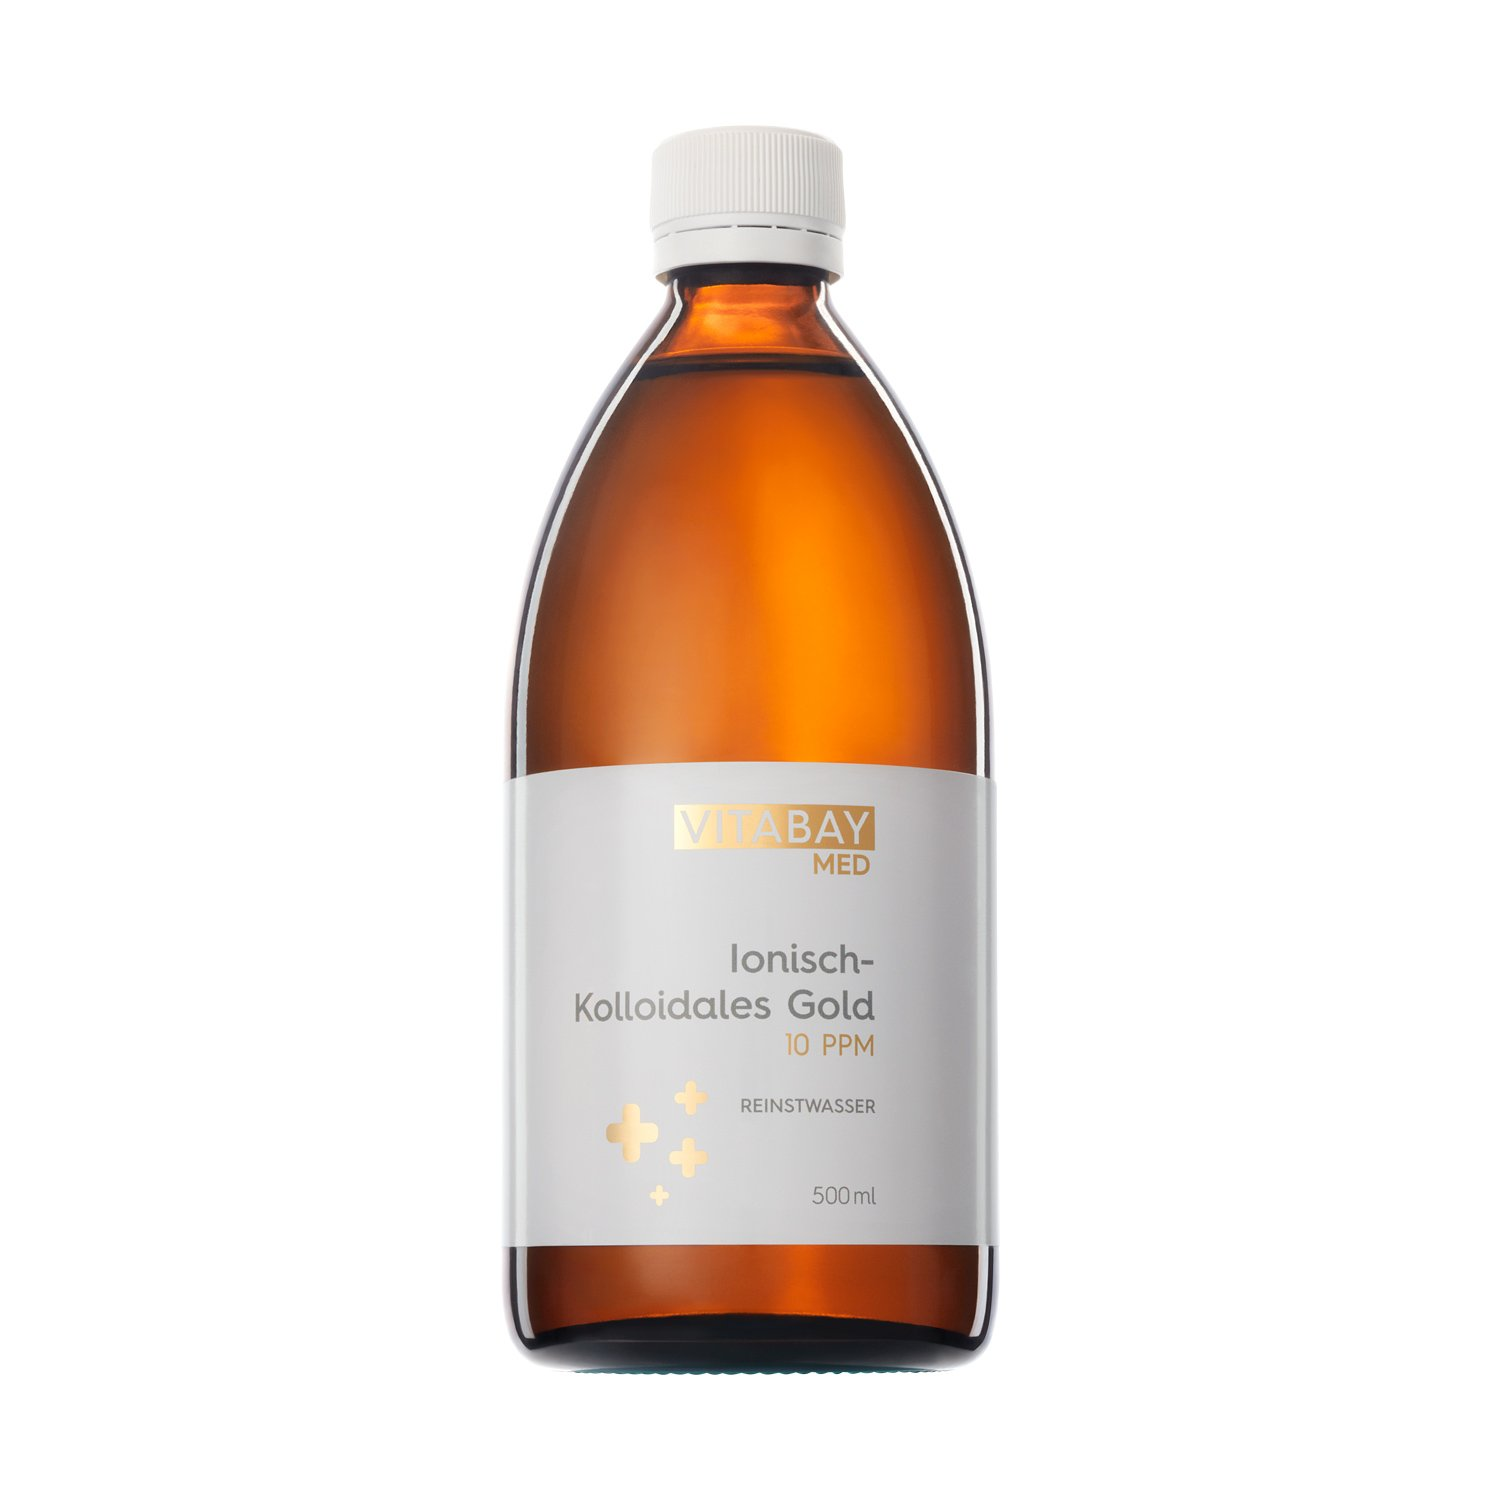 Coloidal Gold 10 PPM - altamente concentrado (nivel de pureza 99.99%) (500 ml): Amazon.es: Salud y cuidado personal